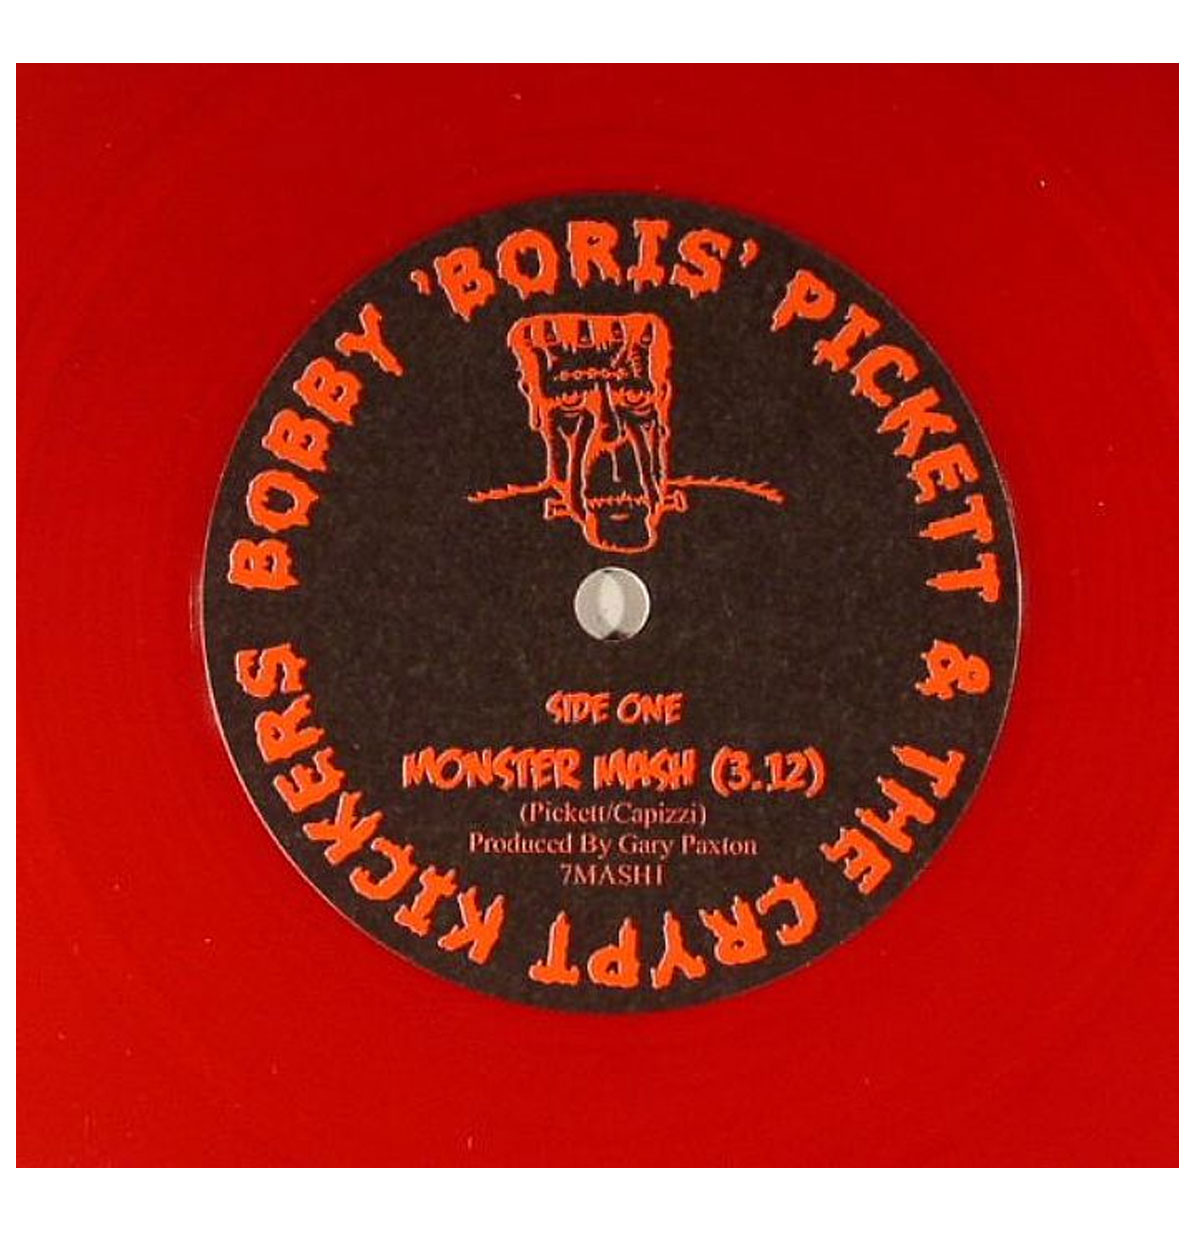 Bobby Boris Pickett & the Crypt Keepers - Monster Mash 45 RPM -Red